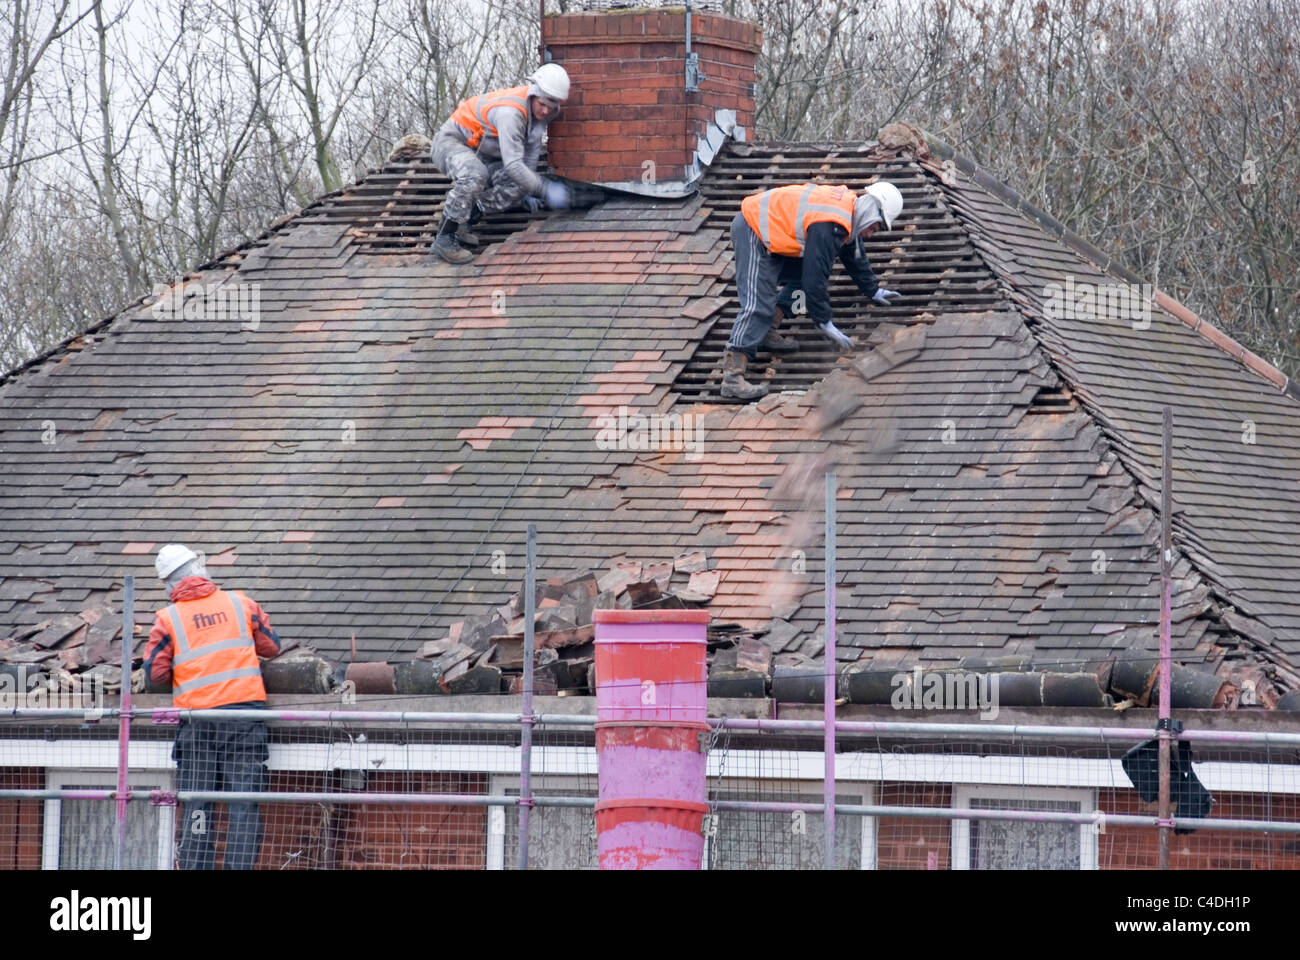 https://i1.wp.com/c8.alamy.com/comp/C4DH1P/three-men-roof-of-house-roof-stripping-off-old-tiles-re-roofing-acis-C4DH1P.jpg